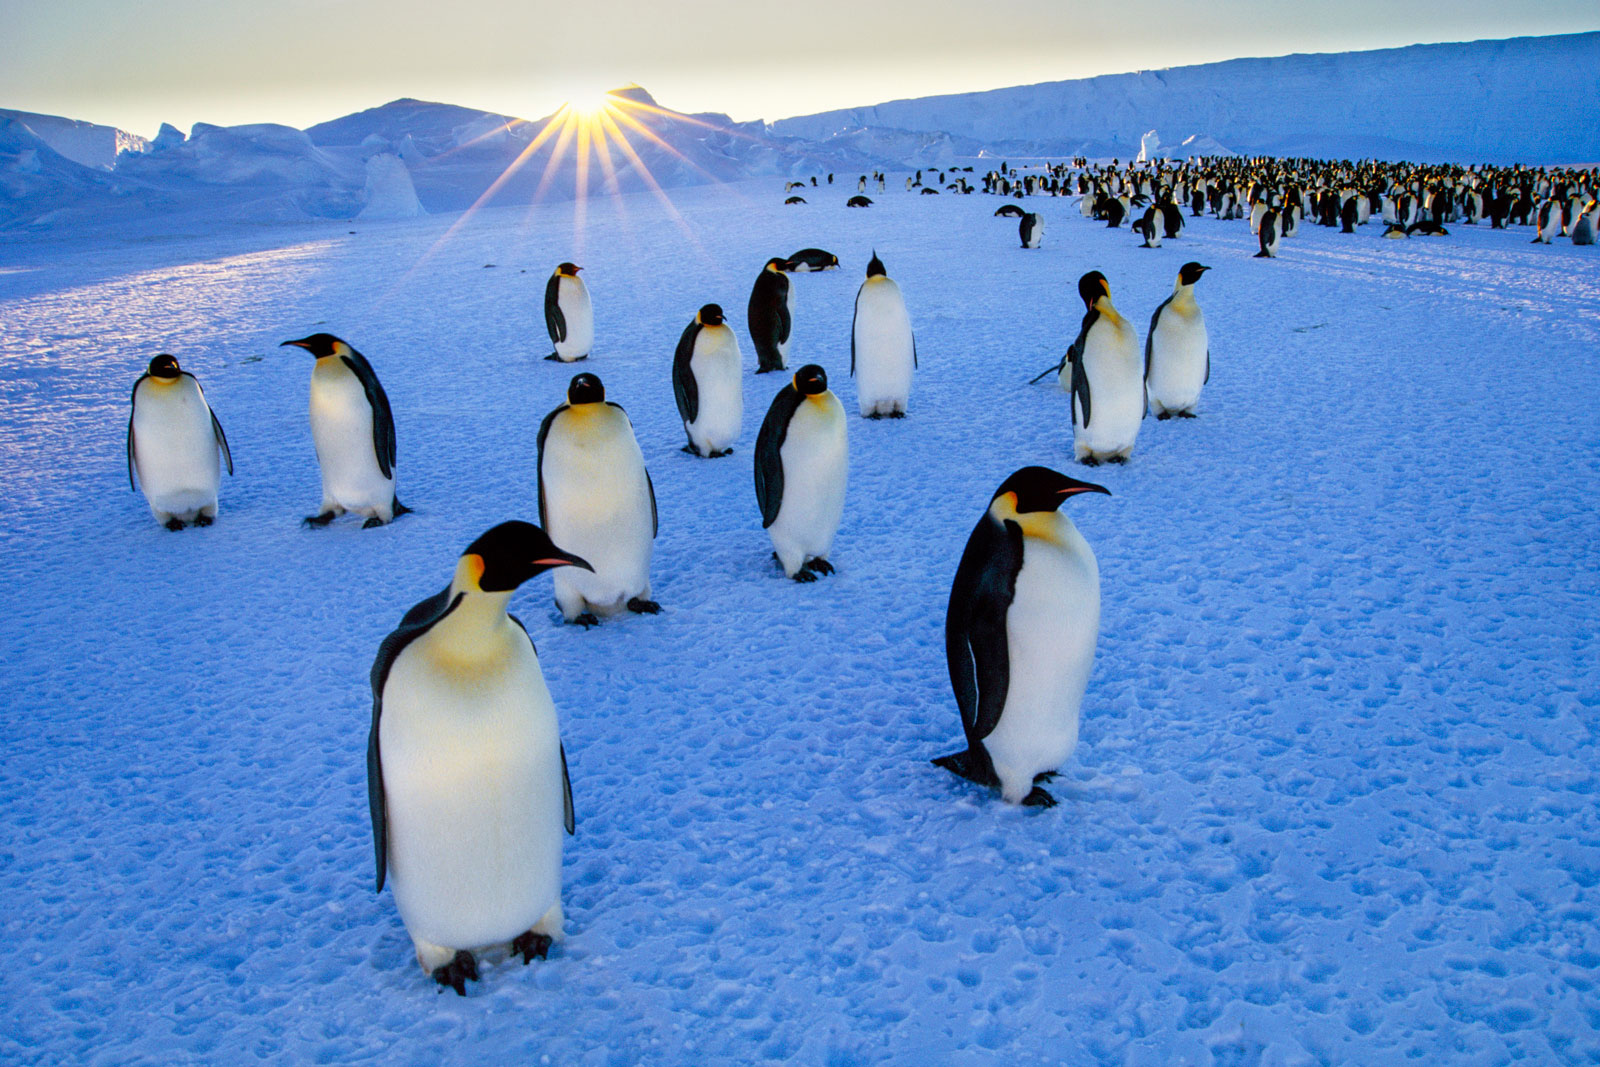 Emperor penguins and setting sun, Weddell Sea, Antarctica